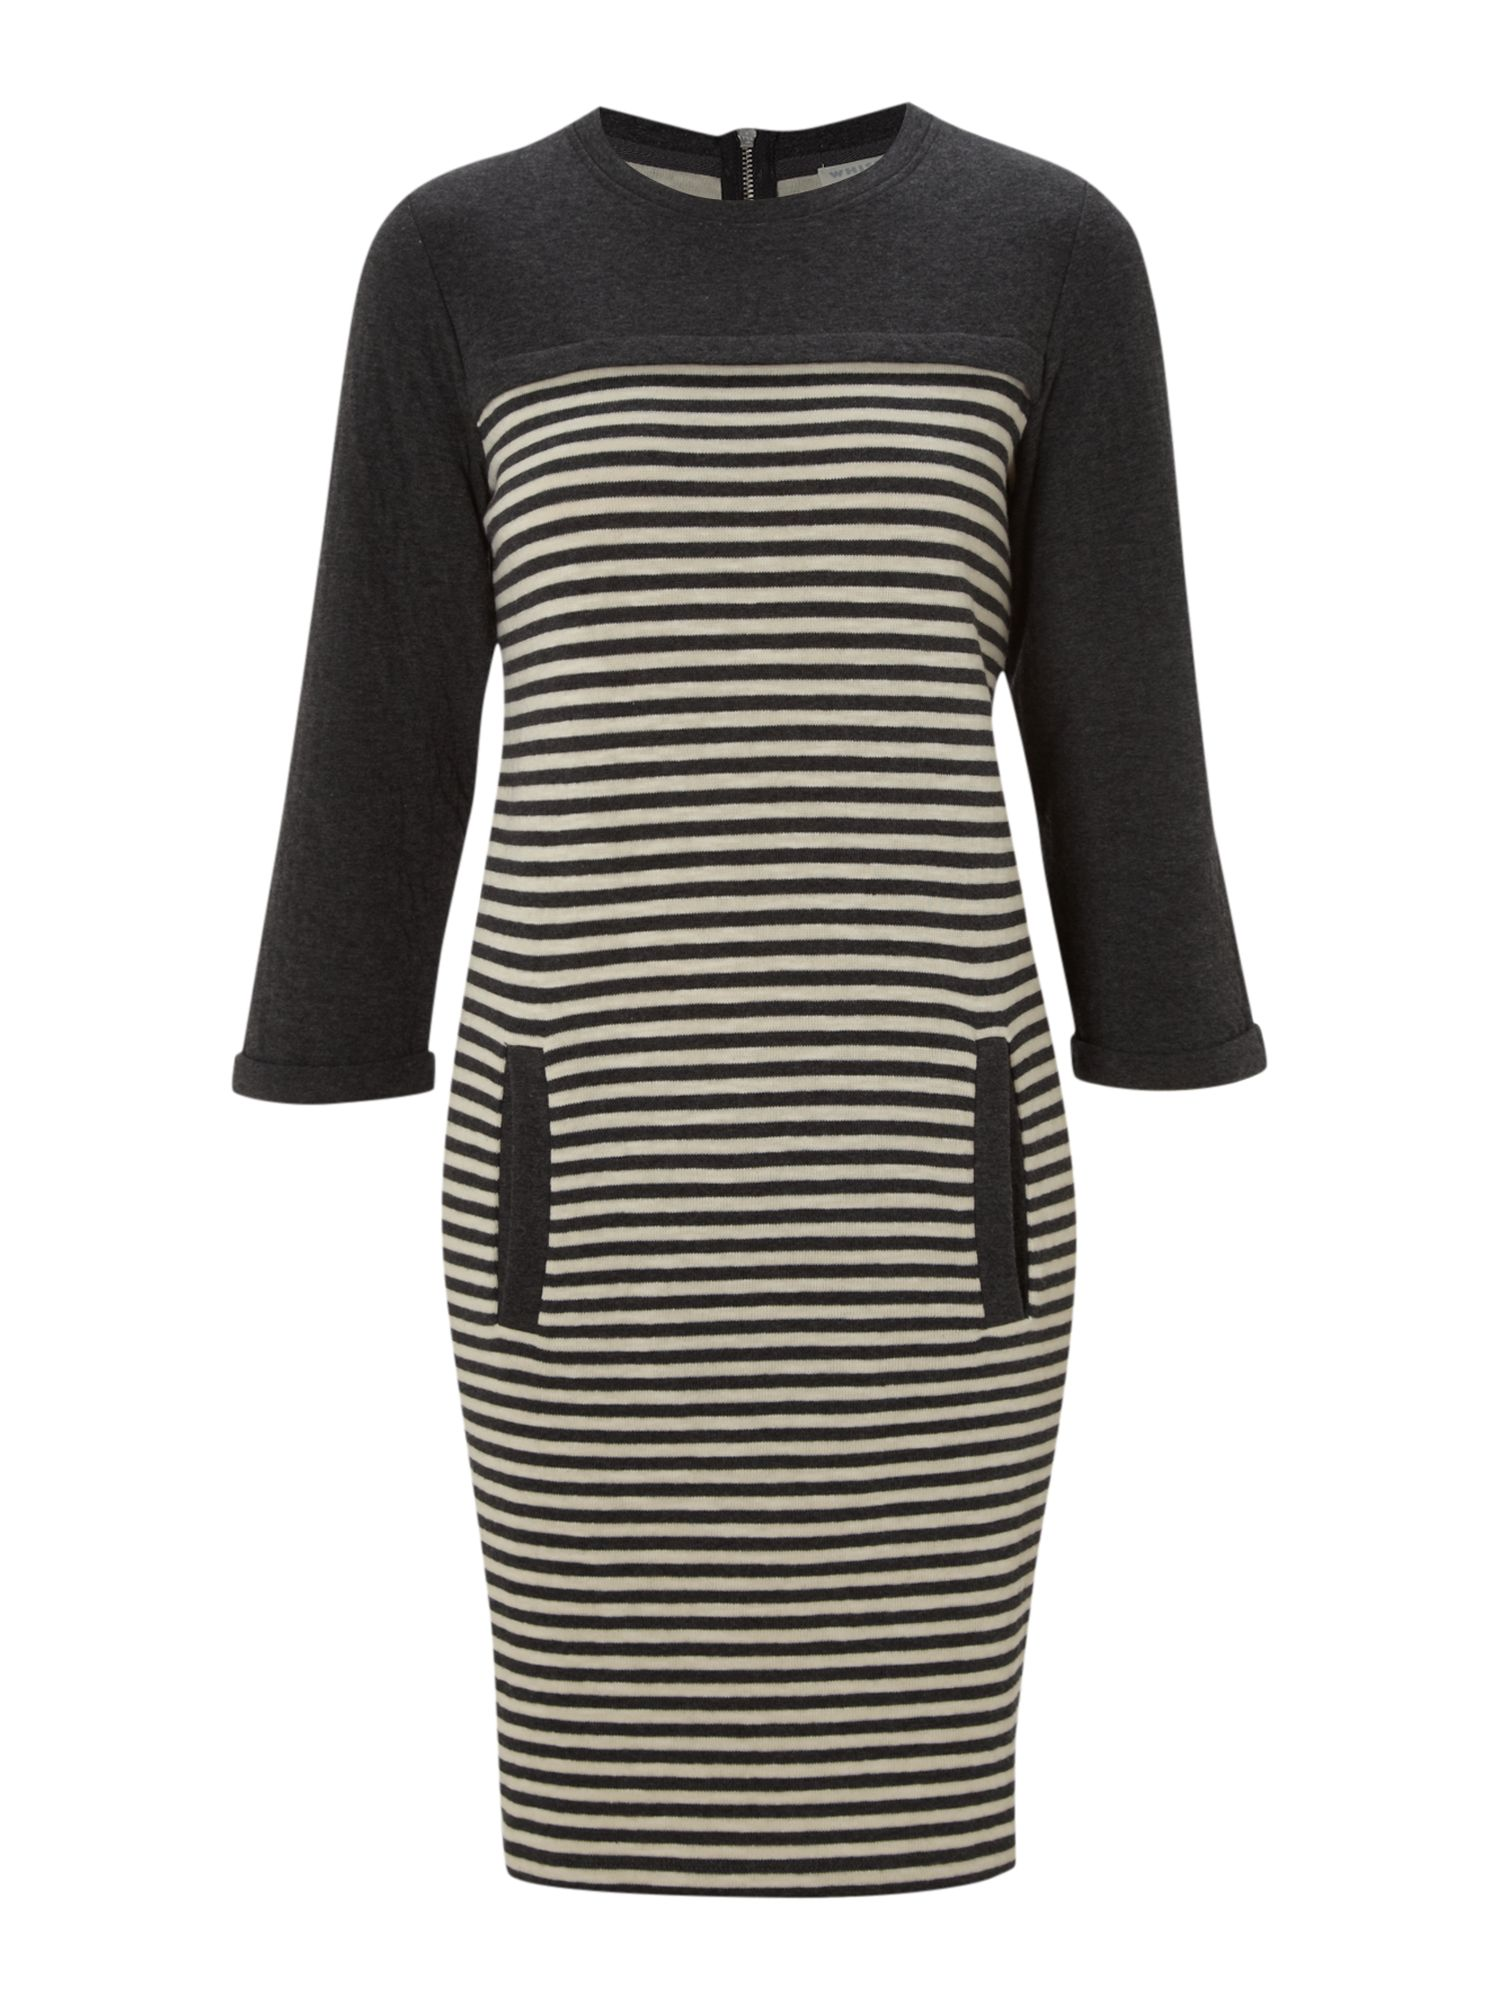 Nelly stripe jersey dress